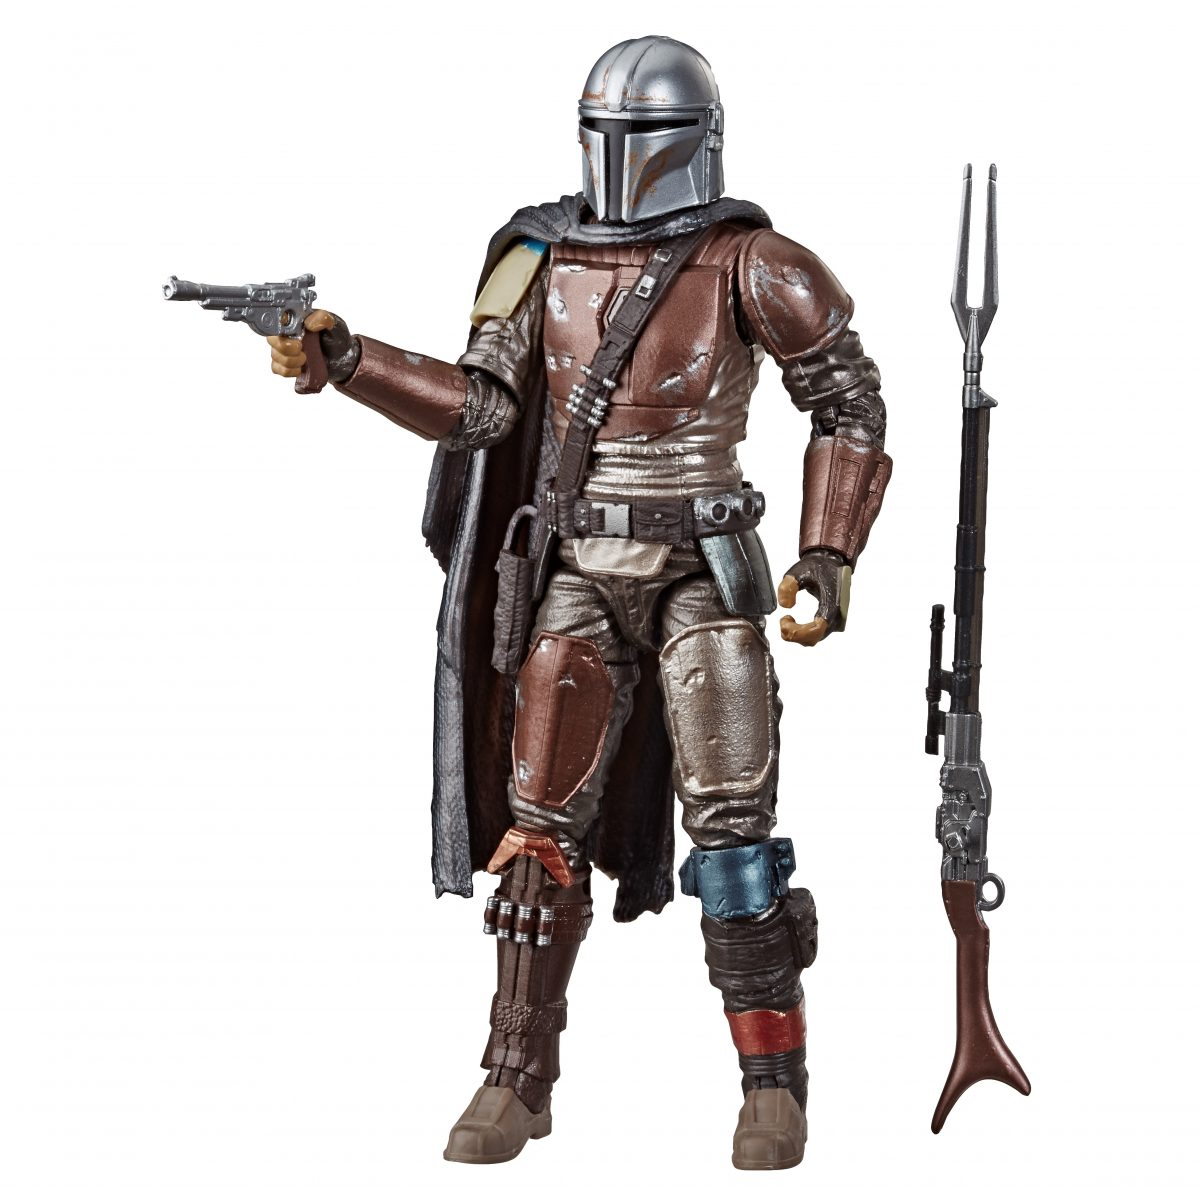 Star Wars: The Mandalorian Toys Revealed | What's On ...